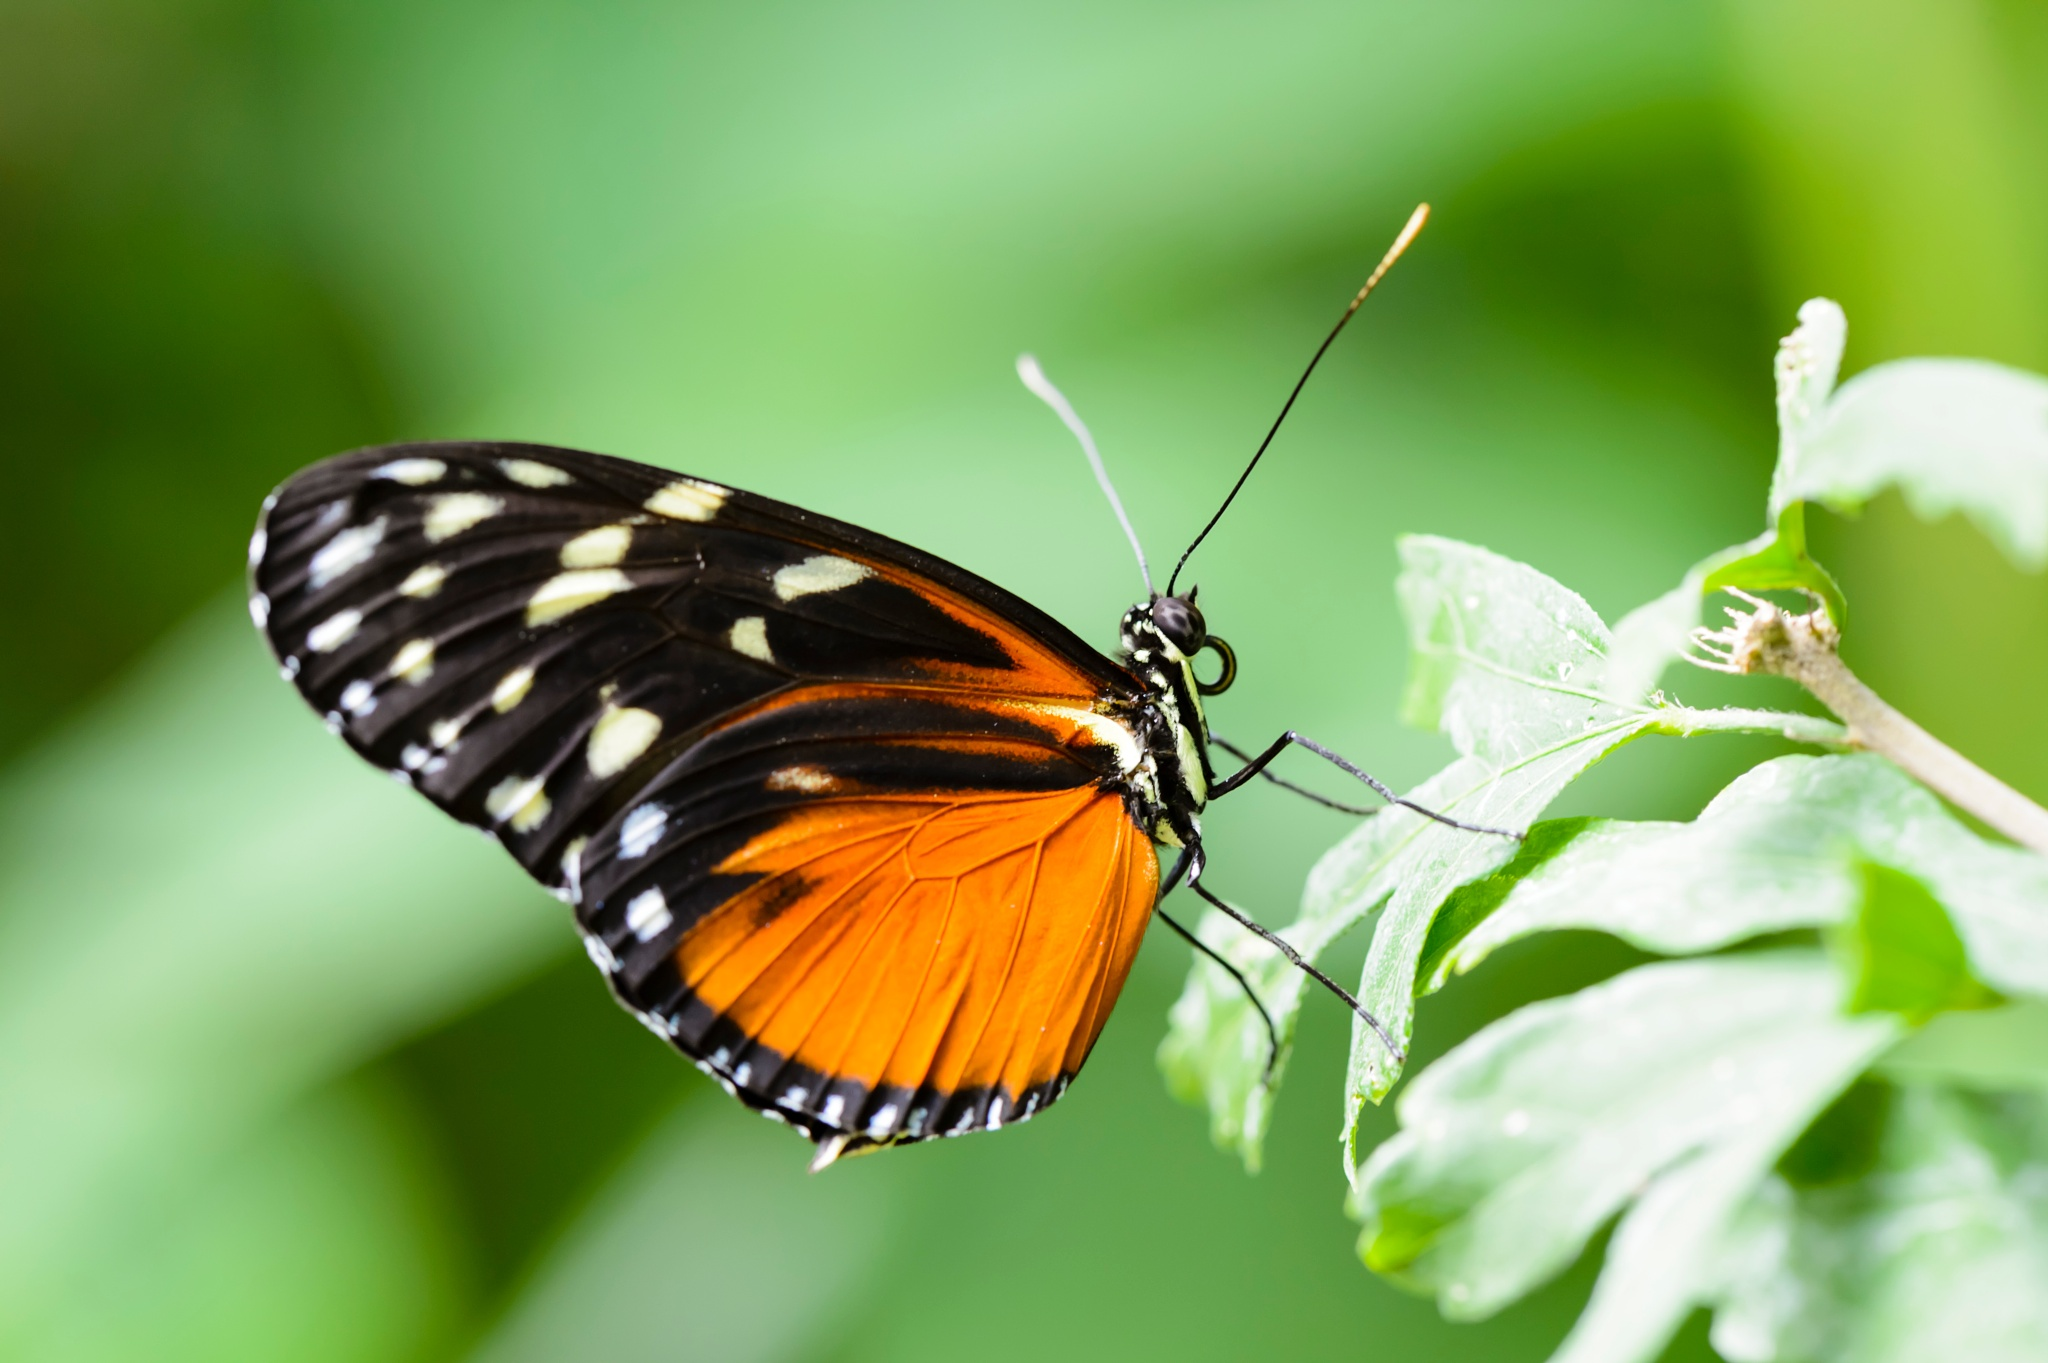 Monarch Butterfly at Rest by slightlydazed